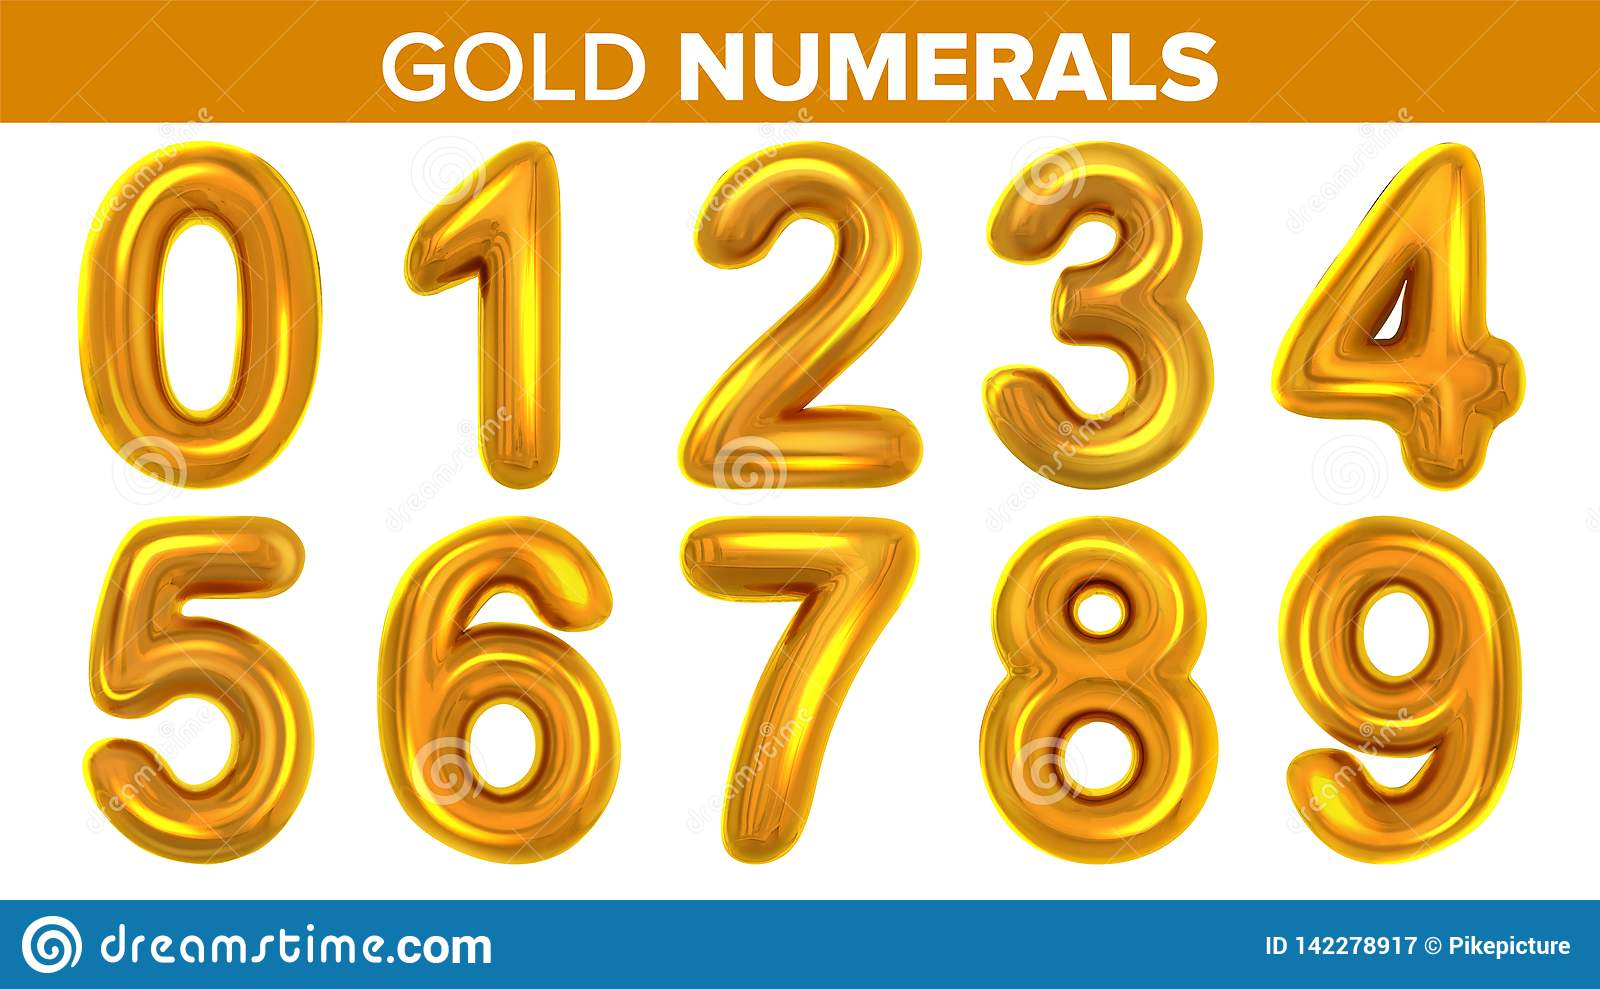 Gold Numerals Set Vector. Golden Yellow Metal Letter. Number 0 1 2 3 4 5 6 7 8 9. Alphabet Font. Typography Design